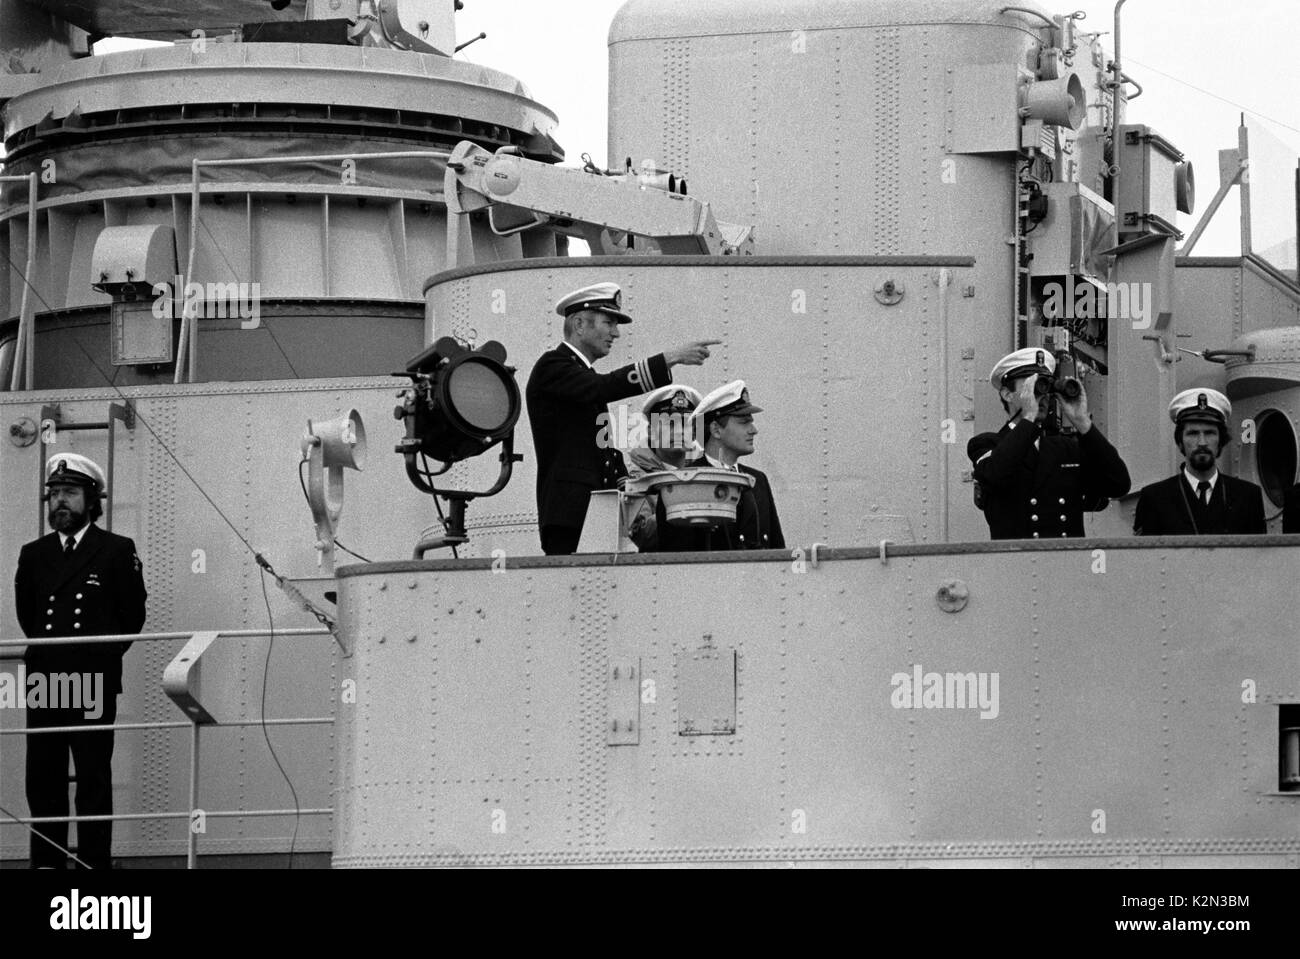 AJAXNETPHOTO. - 16TH AUGUST, 1979. PLYMOUTH, ENGLAND. - FASTNET END - CAPTAIN SCHMIDT (POINTING), C/O OF THE DUTCH NAVAL FRIGATE OVERIJSSEL WHICH RESCUED SURVIVORS OF THE STORM BATTERED 605 MILE OCEAN RACE, DOCKING THE SHIP ON ARRIVAL  AT DEVONPORT.  PHOTO:JONATHAN EASTLAND/AJAX. REF:791608_1_1 - Stock Image